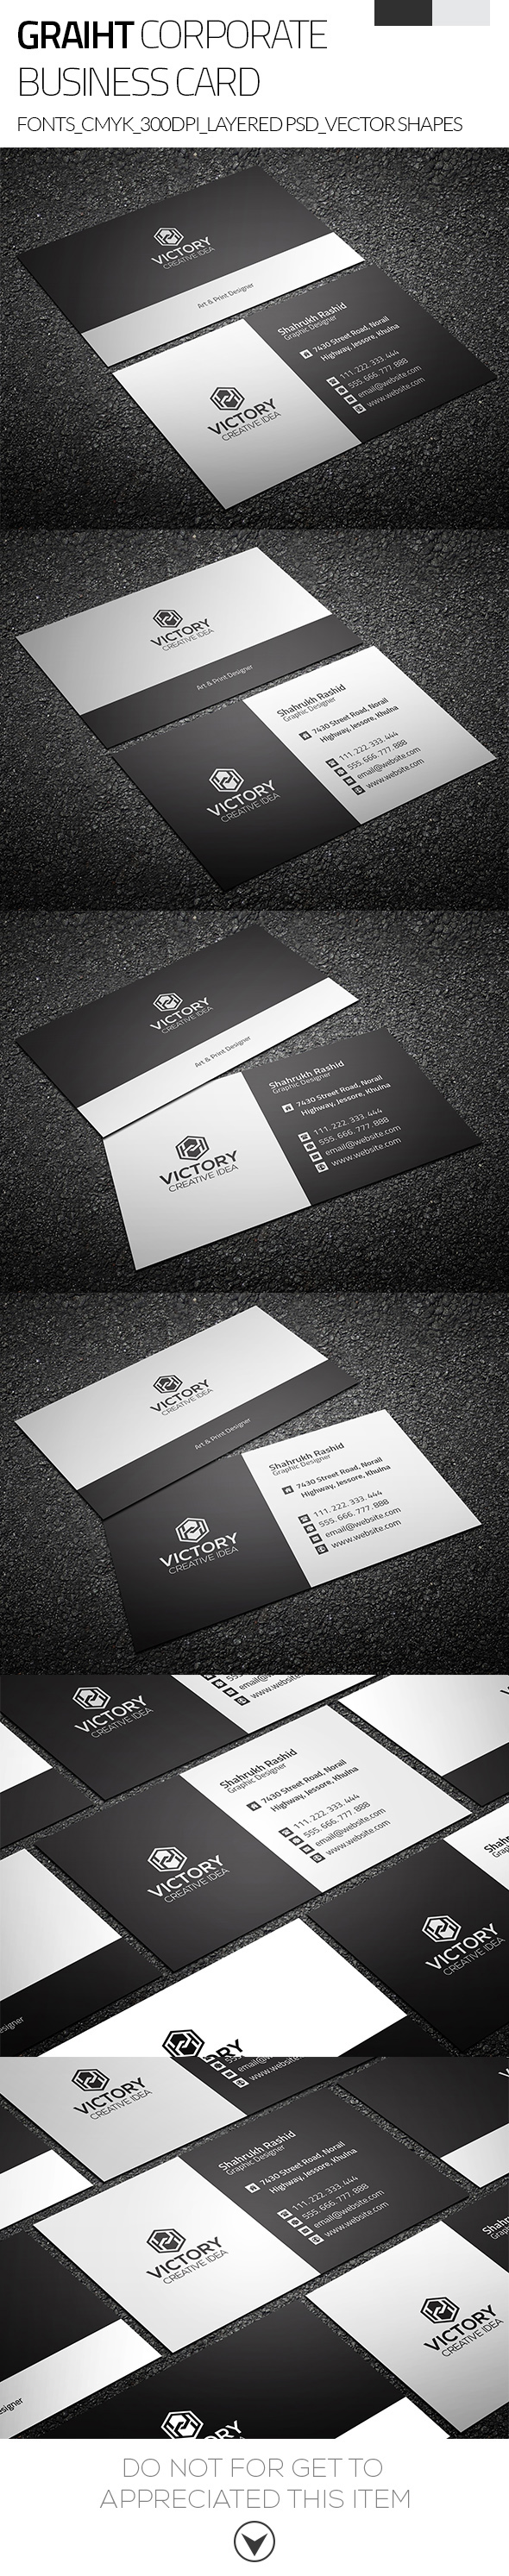 Download i graiht corporate business card free on behance reheart